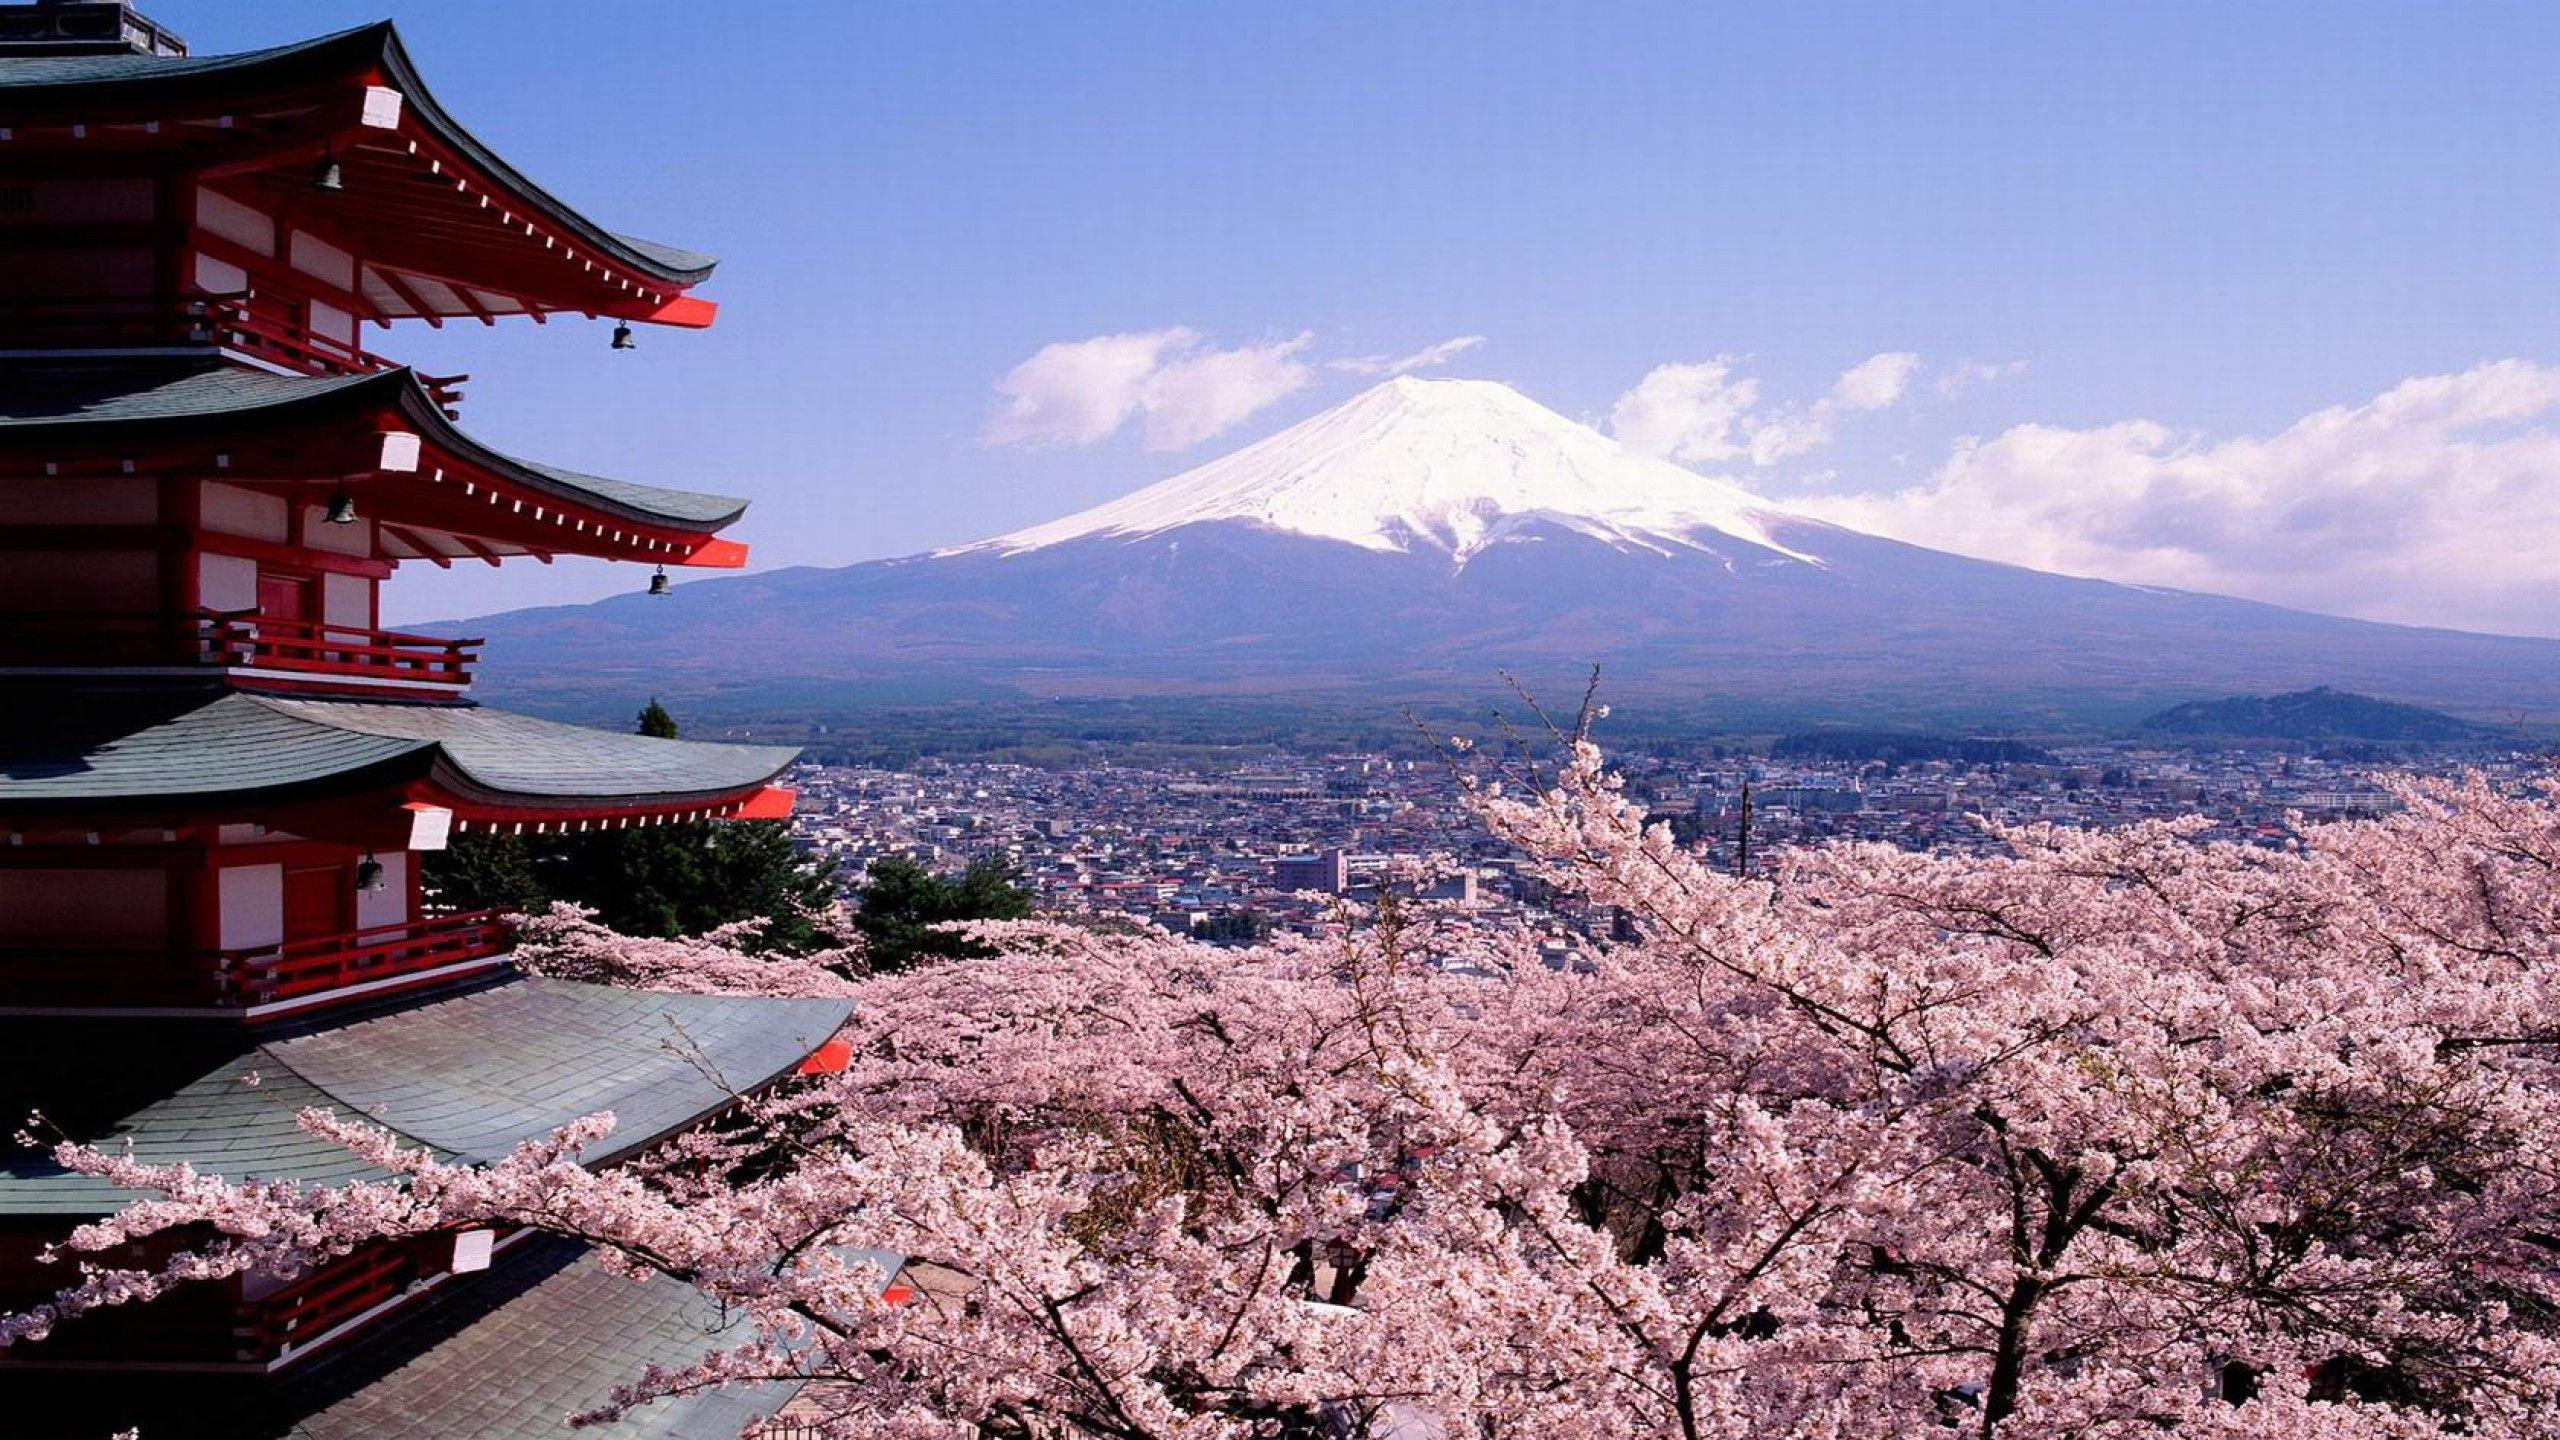 Mount Fuji Japan Wallpapers   Top Mount Fuji Japan 2560x1440